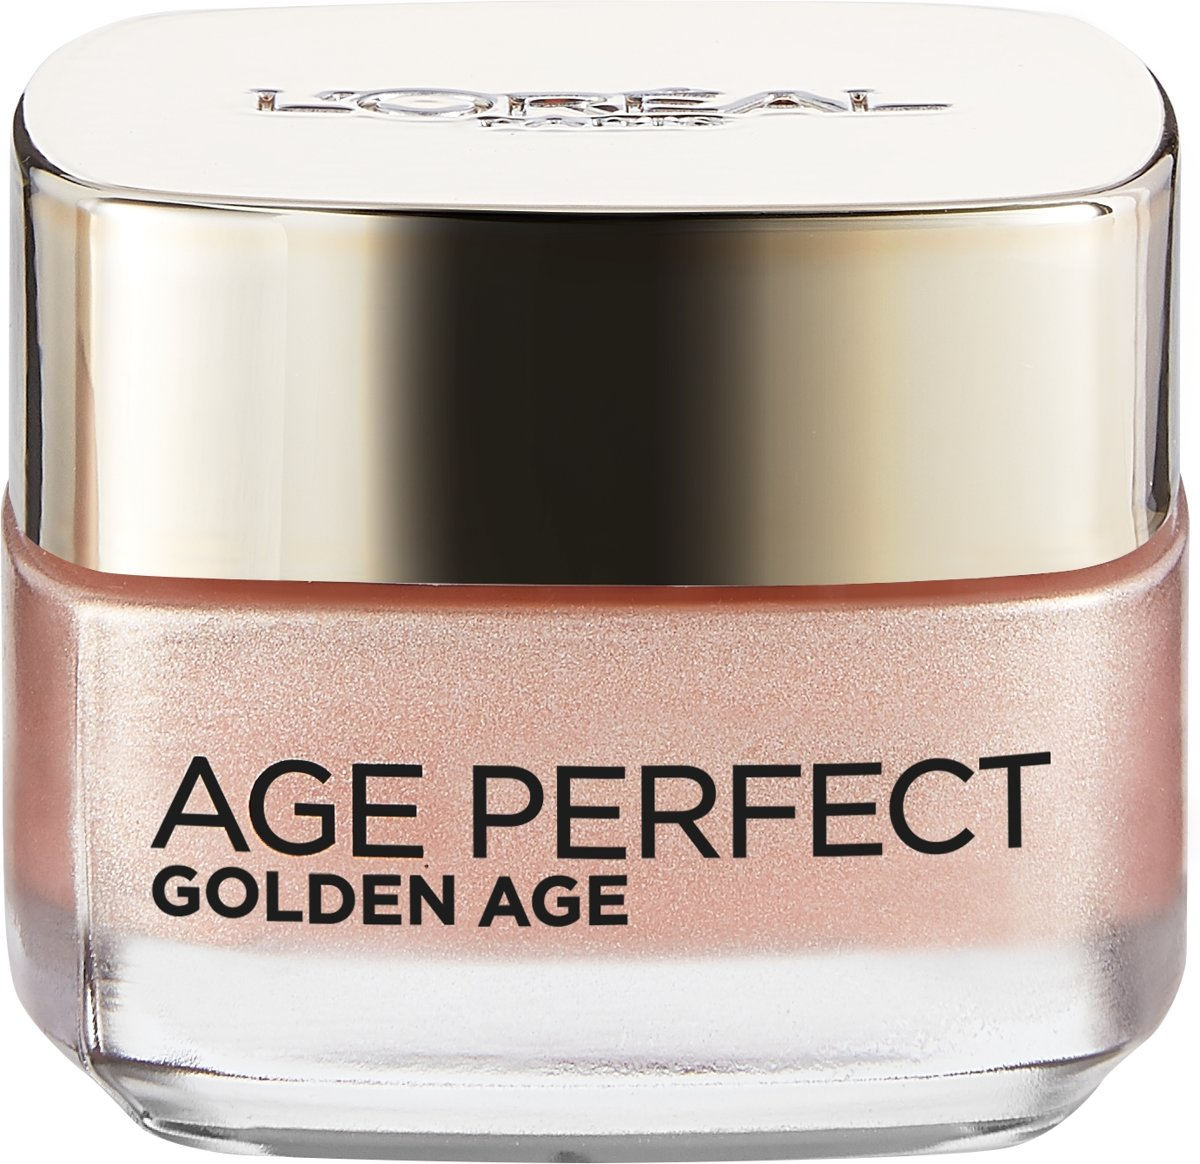 LOréal Paris Age Perfect Golden Age Oogcrème